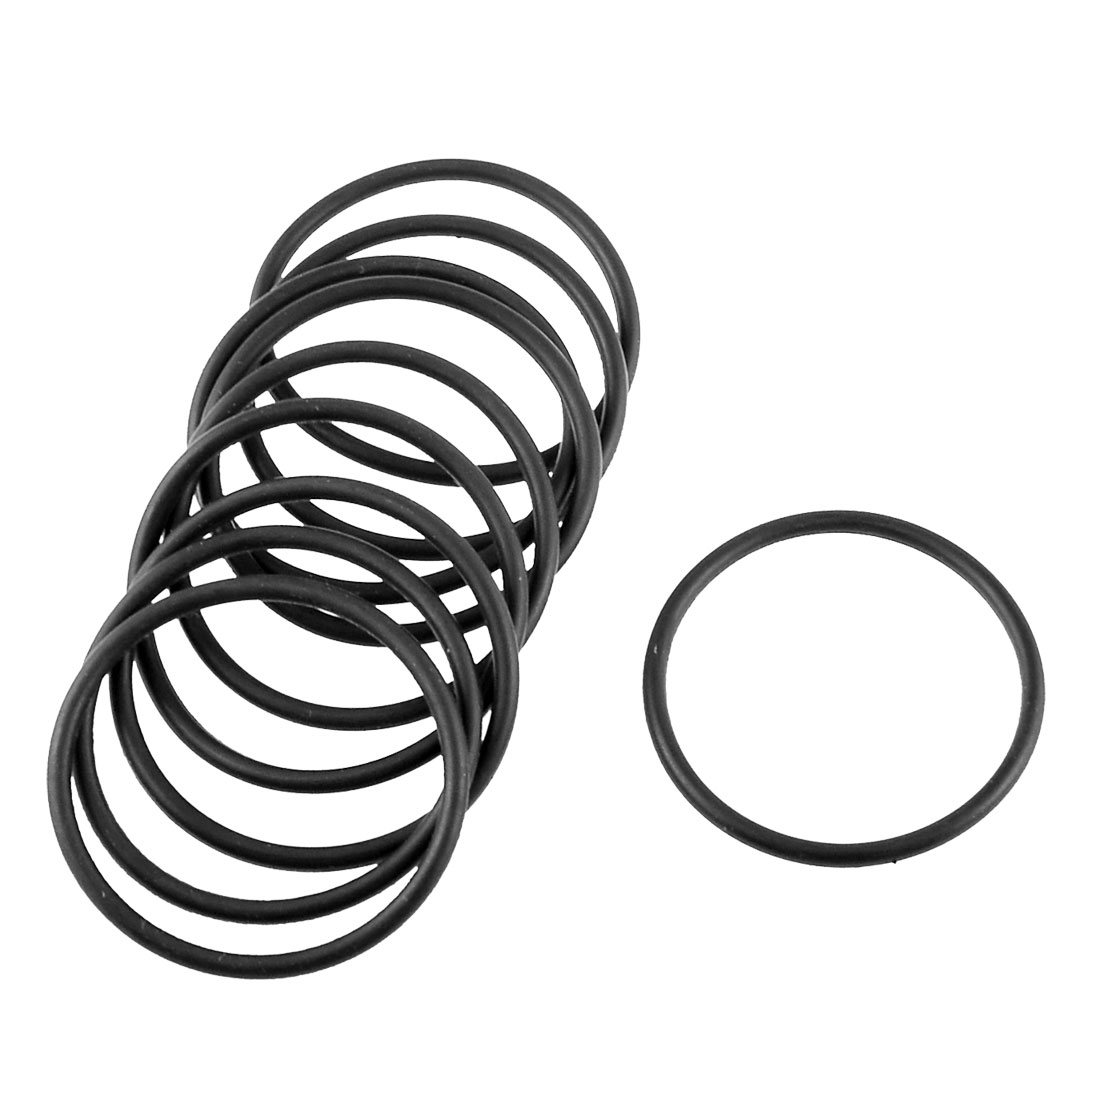 Uxcell Rubber O Shaped Rings Oil Seal Gasket Washer Black 15mm x 9mm x 3mm 10 Piece